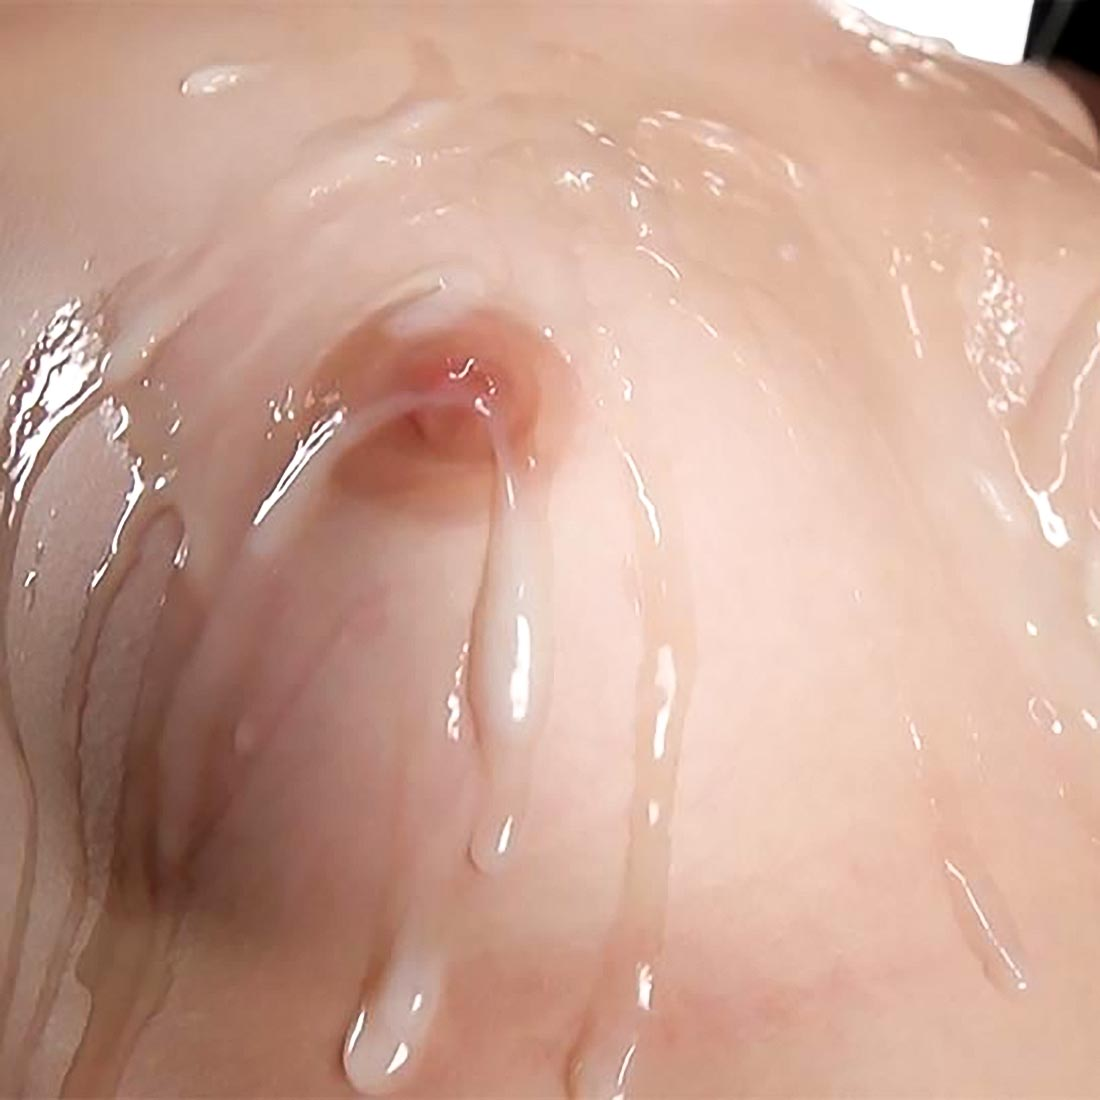 Kristen Scott Uses Her Sperm Covered Body to Make You Cum. Uncensored Body Bukkake with a nude girl receiving 18 cumshots by Cum Fetish Studio SpermMania.